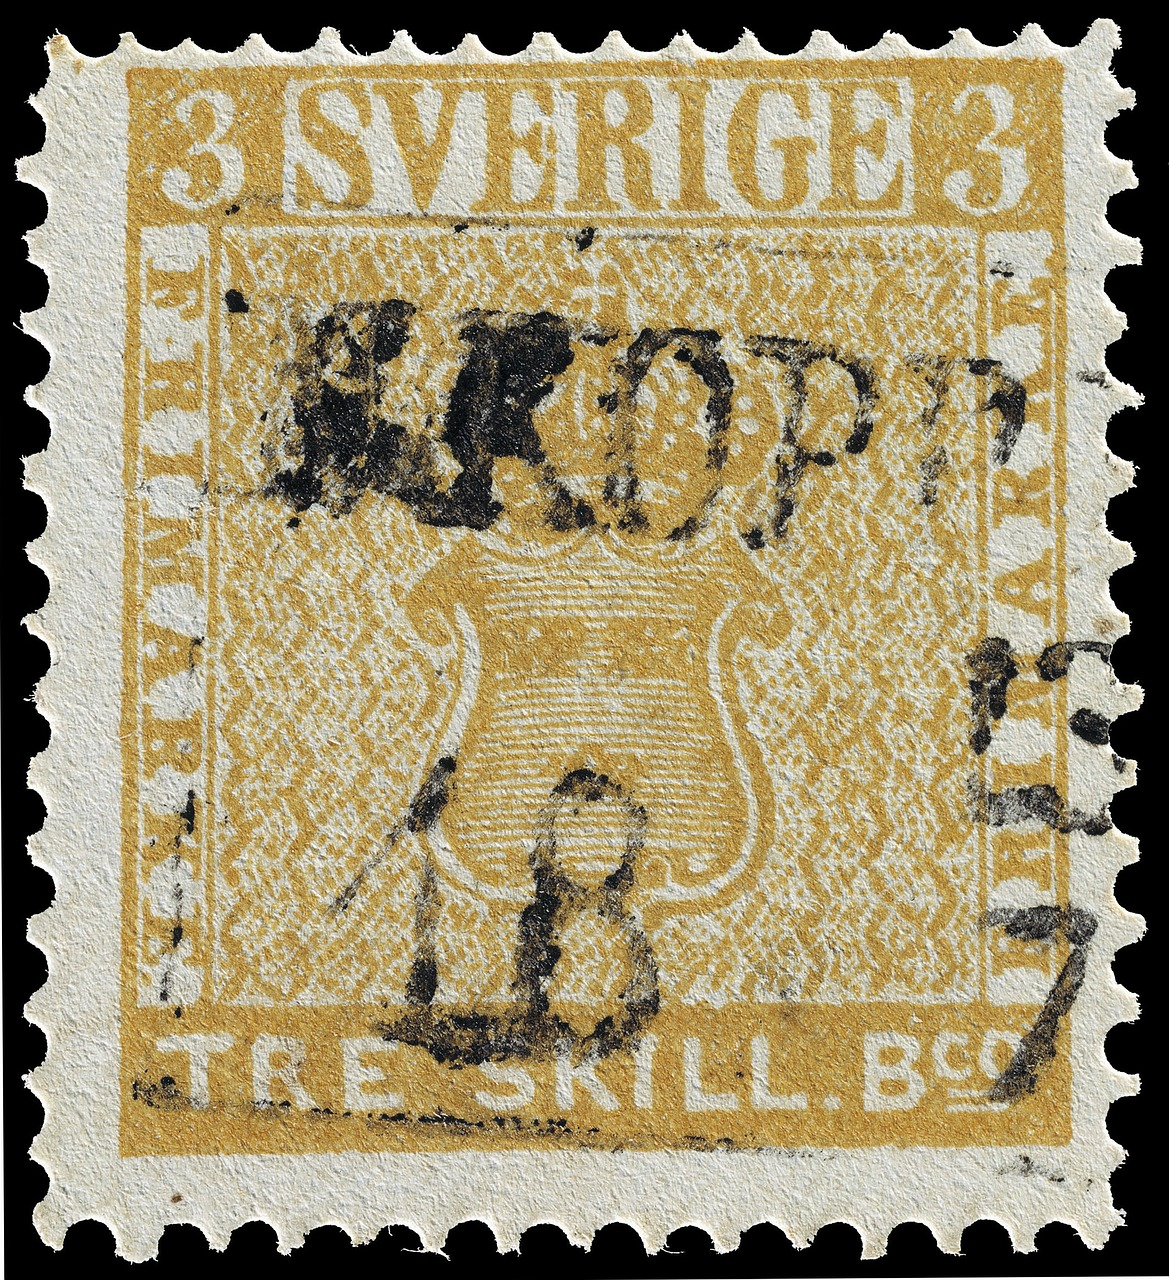 stamp,tre skilling banco error,swedish,three,3,1855,valuable,expensive,rarely,sweden,free pictures, free photos, free images, royalty free, free illustrations, public domain